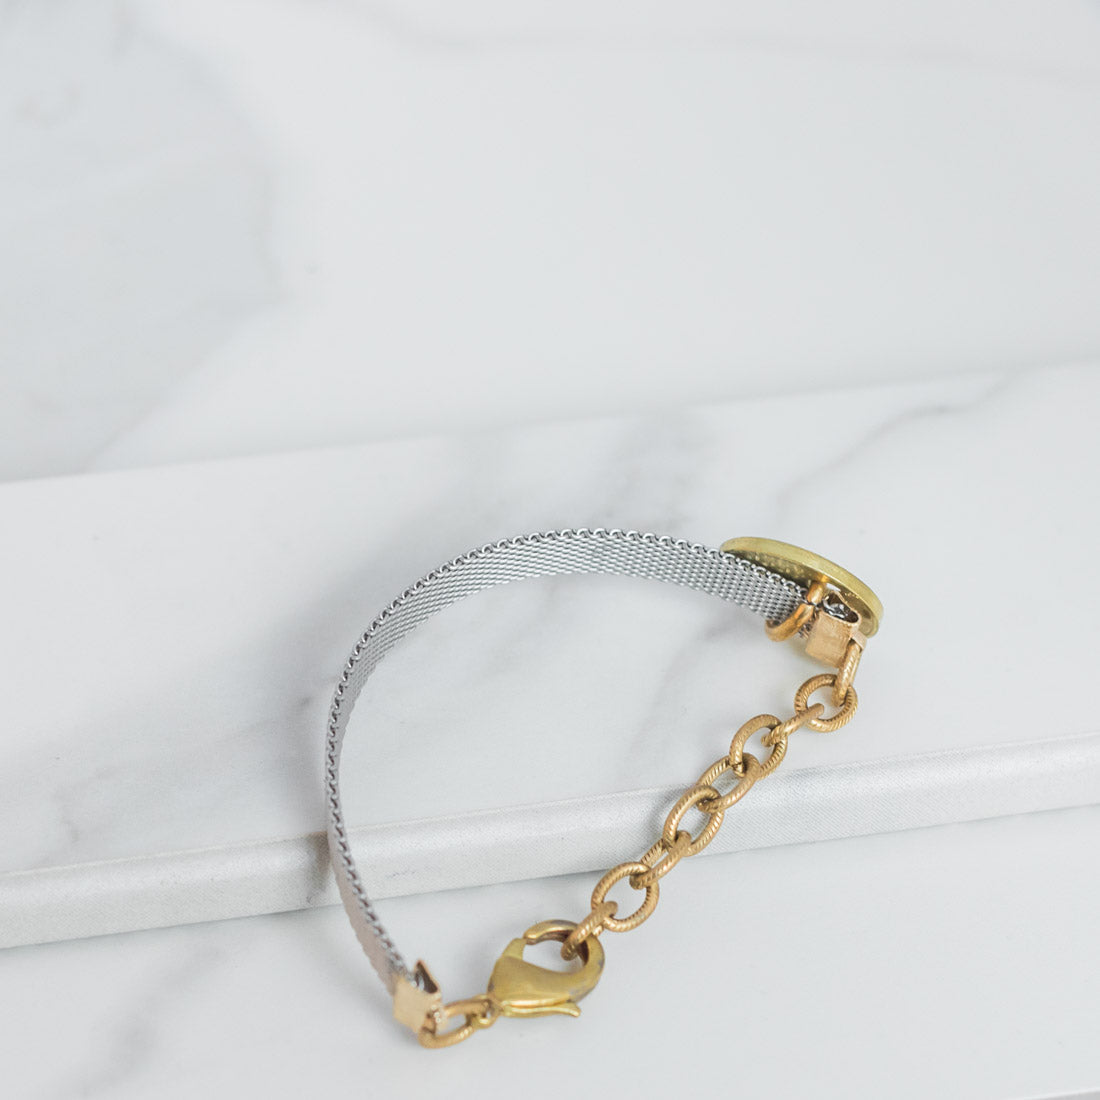 MESH Bracelet - Twisted Silver Jewelry